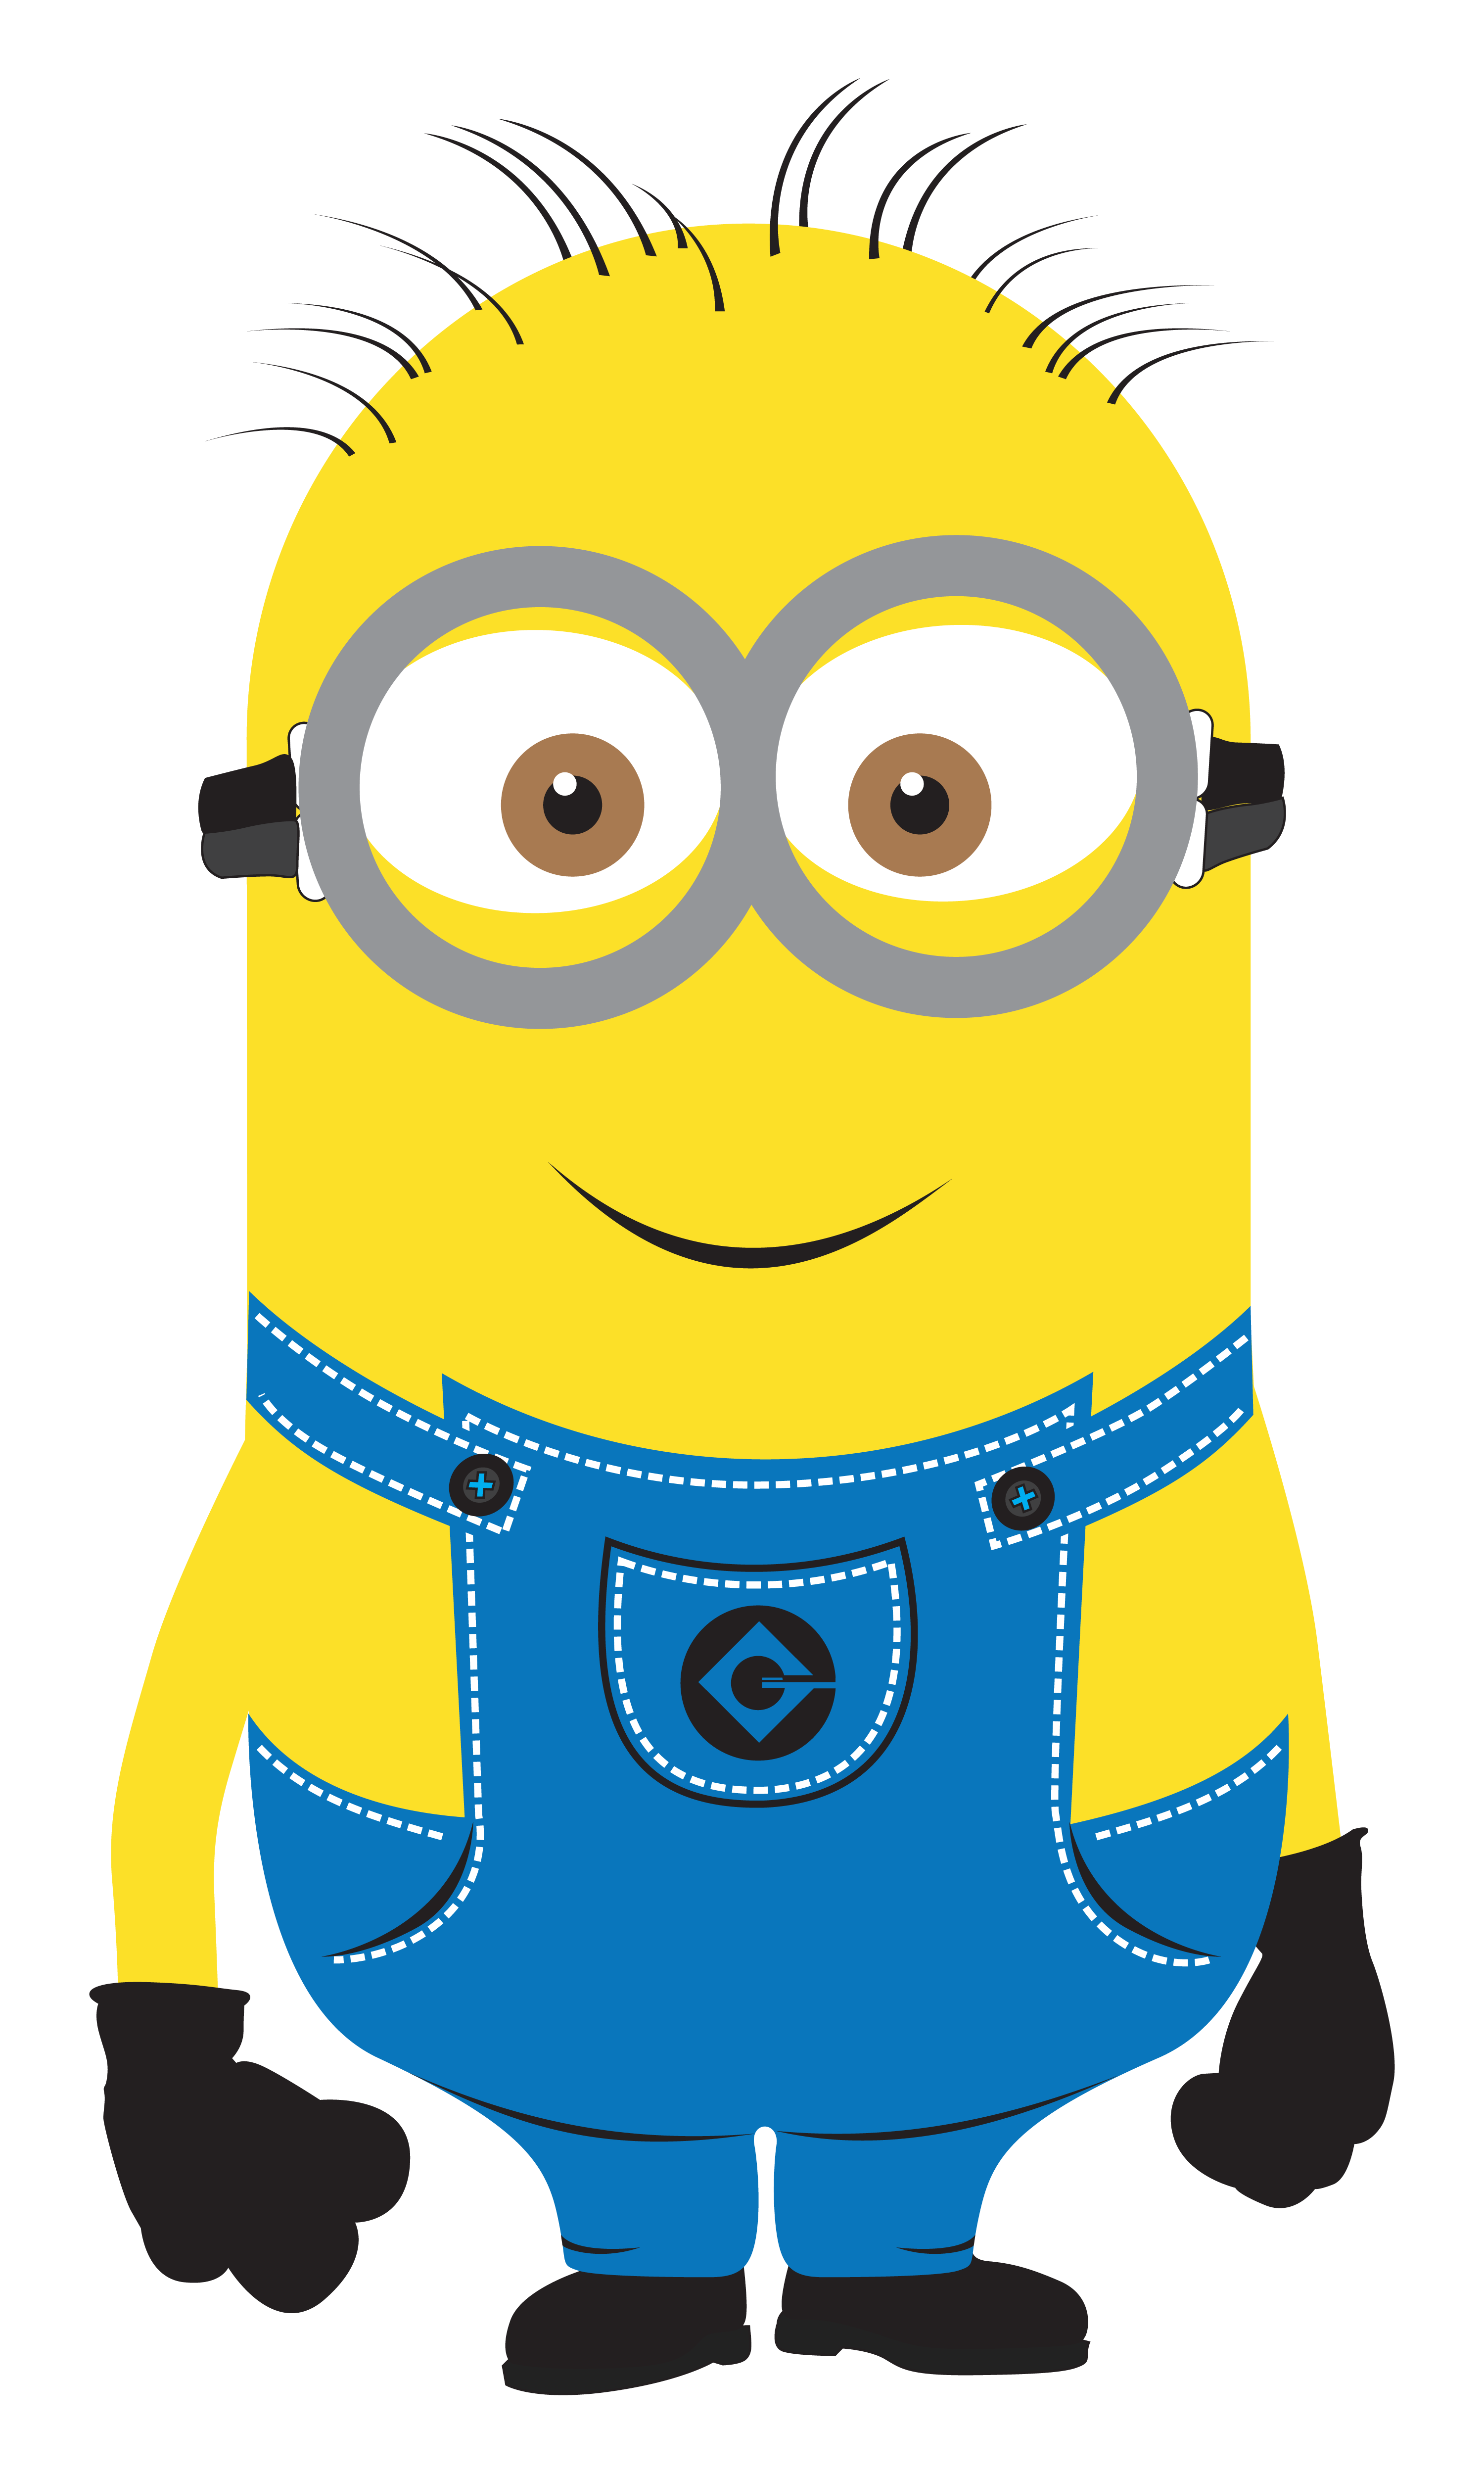 Up clipart kevin. Despicable me minions vector